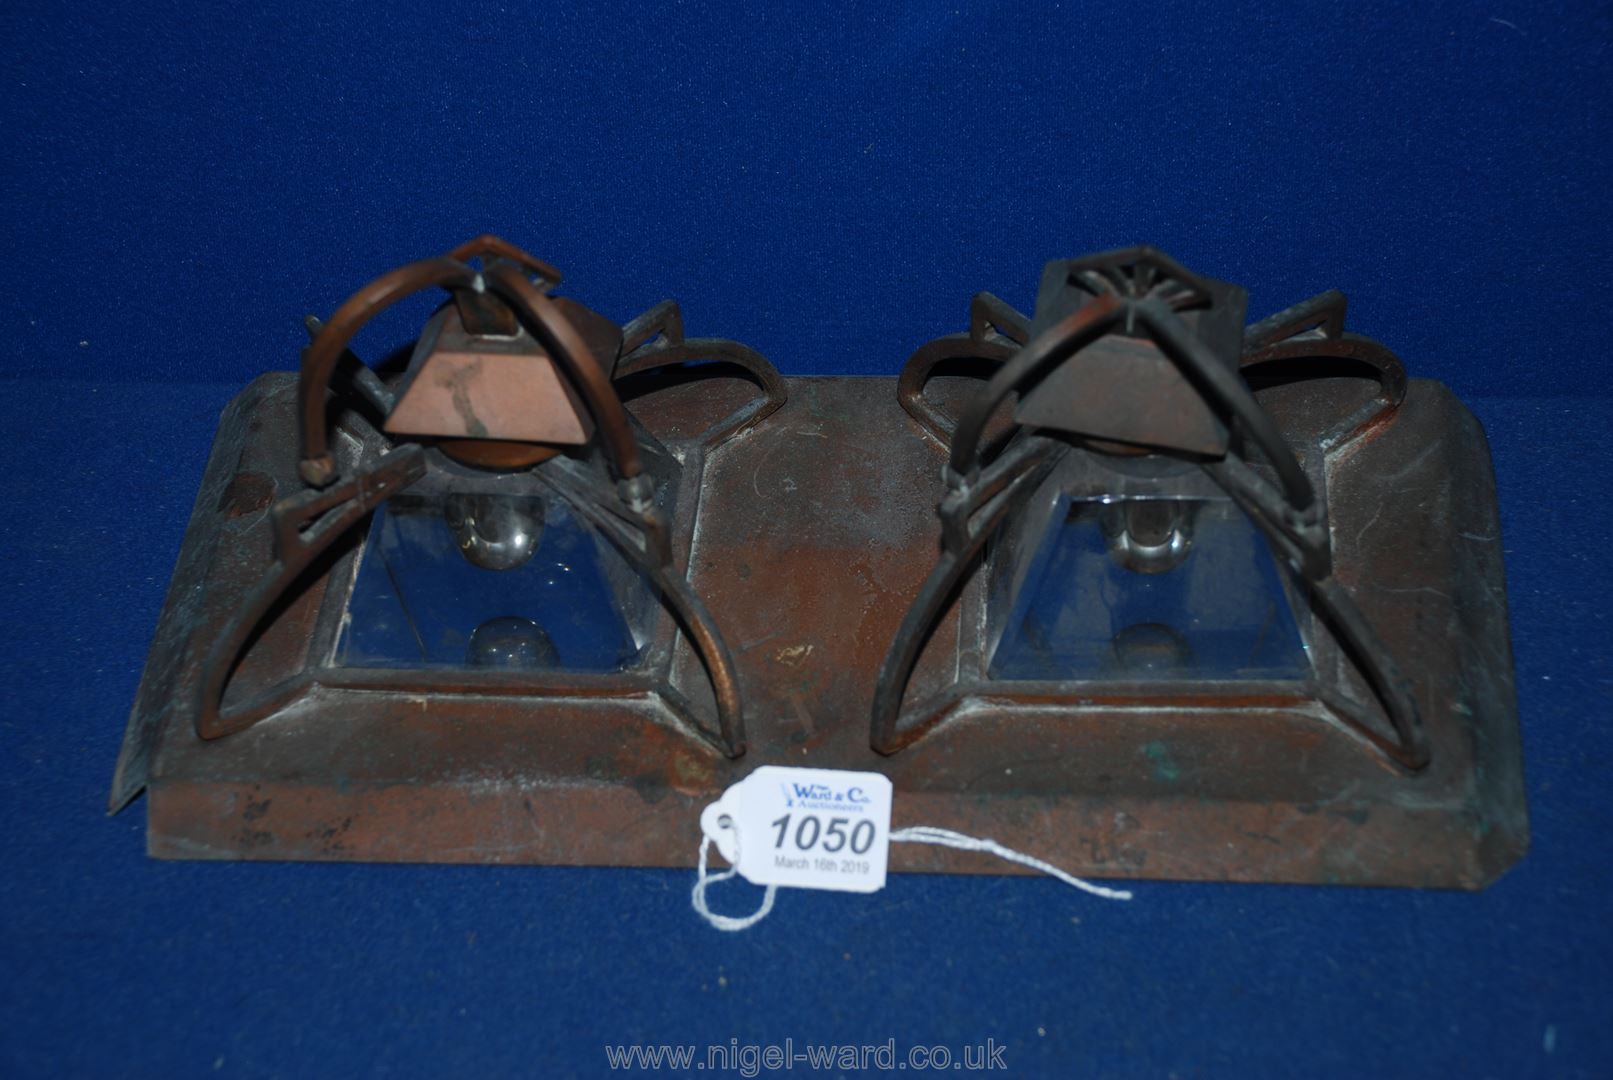 Lot 1050 - An old double Inkwell.